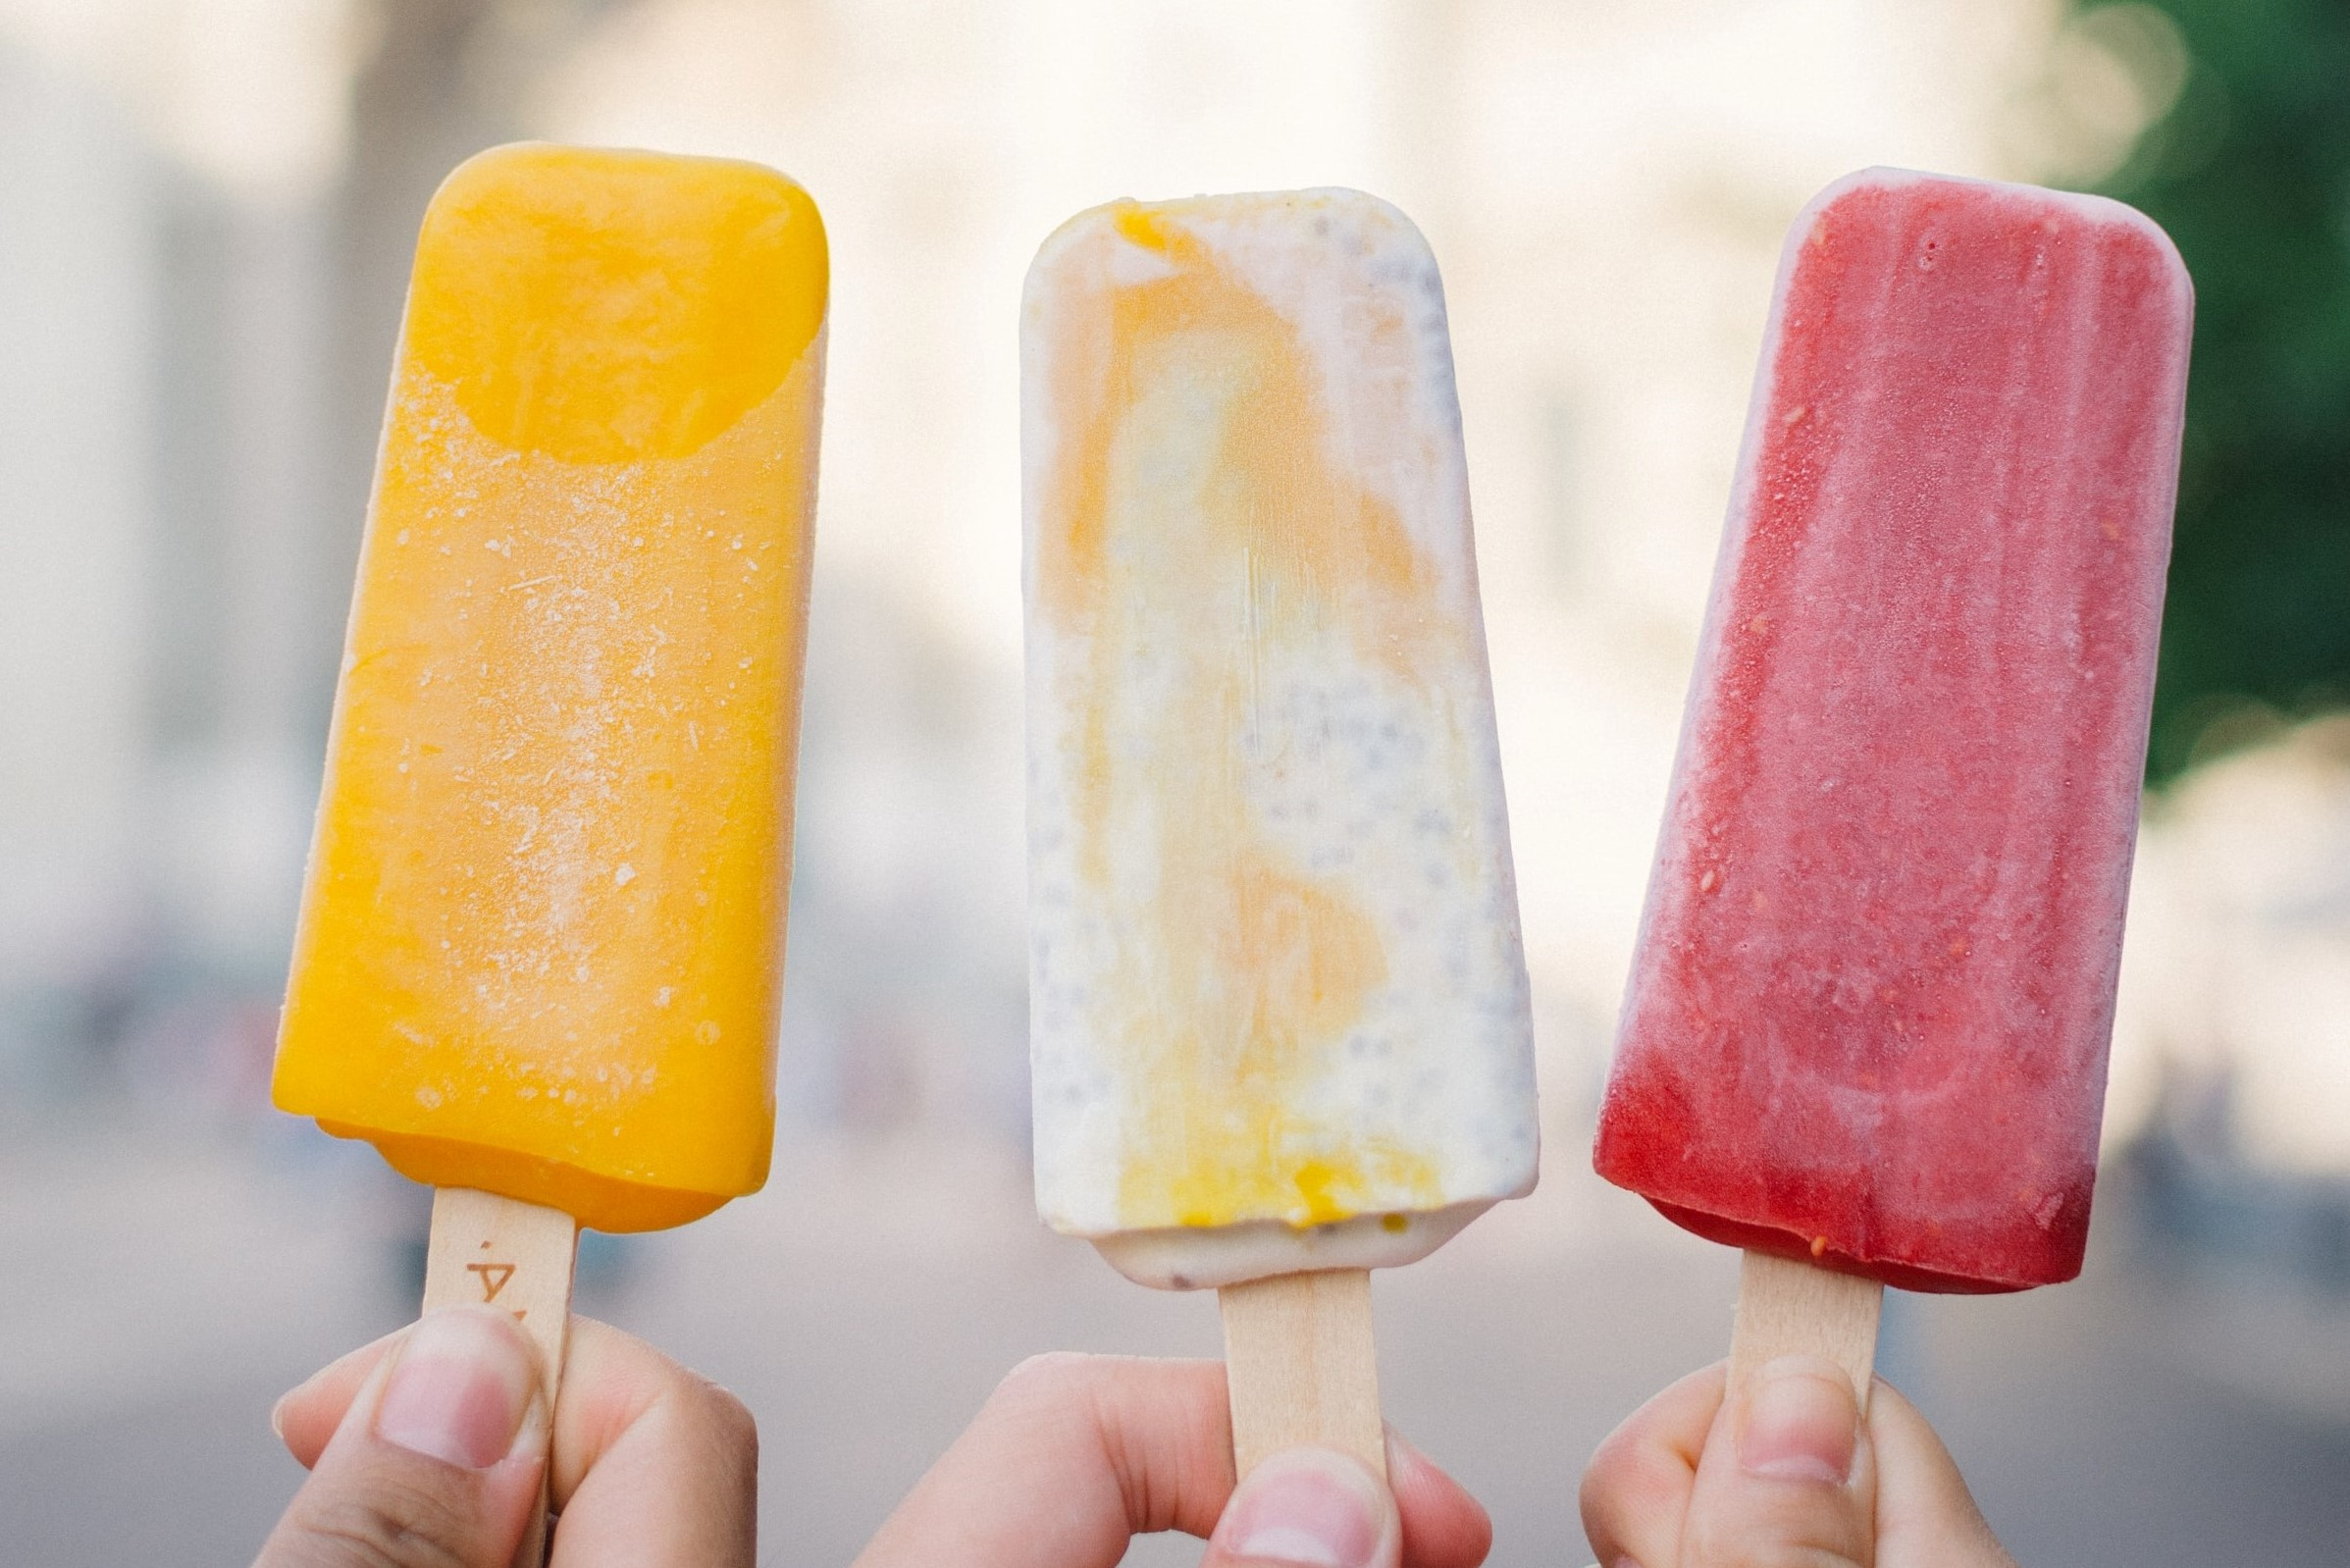 Three people hold up colourful ice lollies in the bright sunshine. One yellow, one cream, one red.